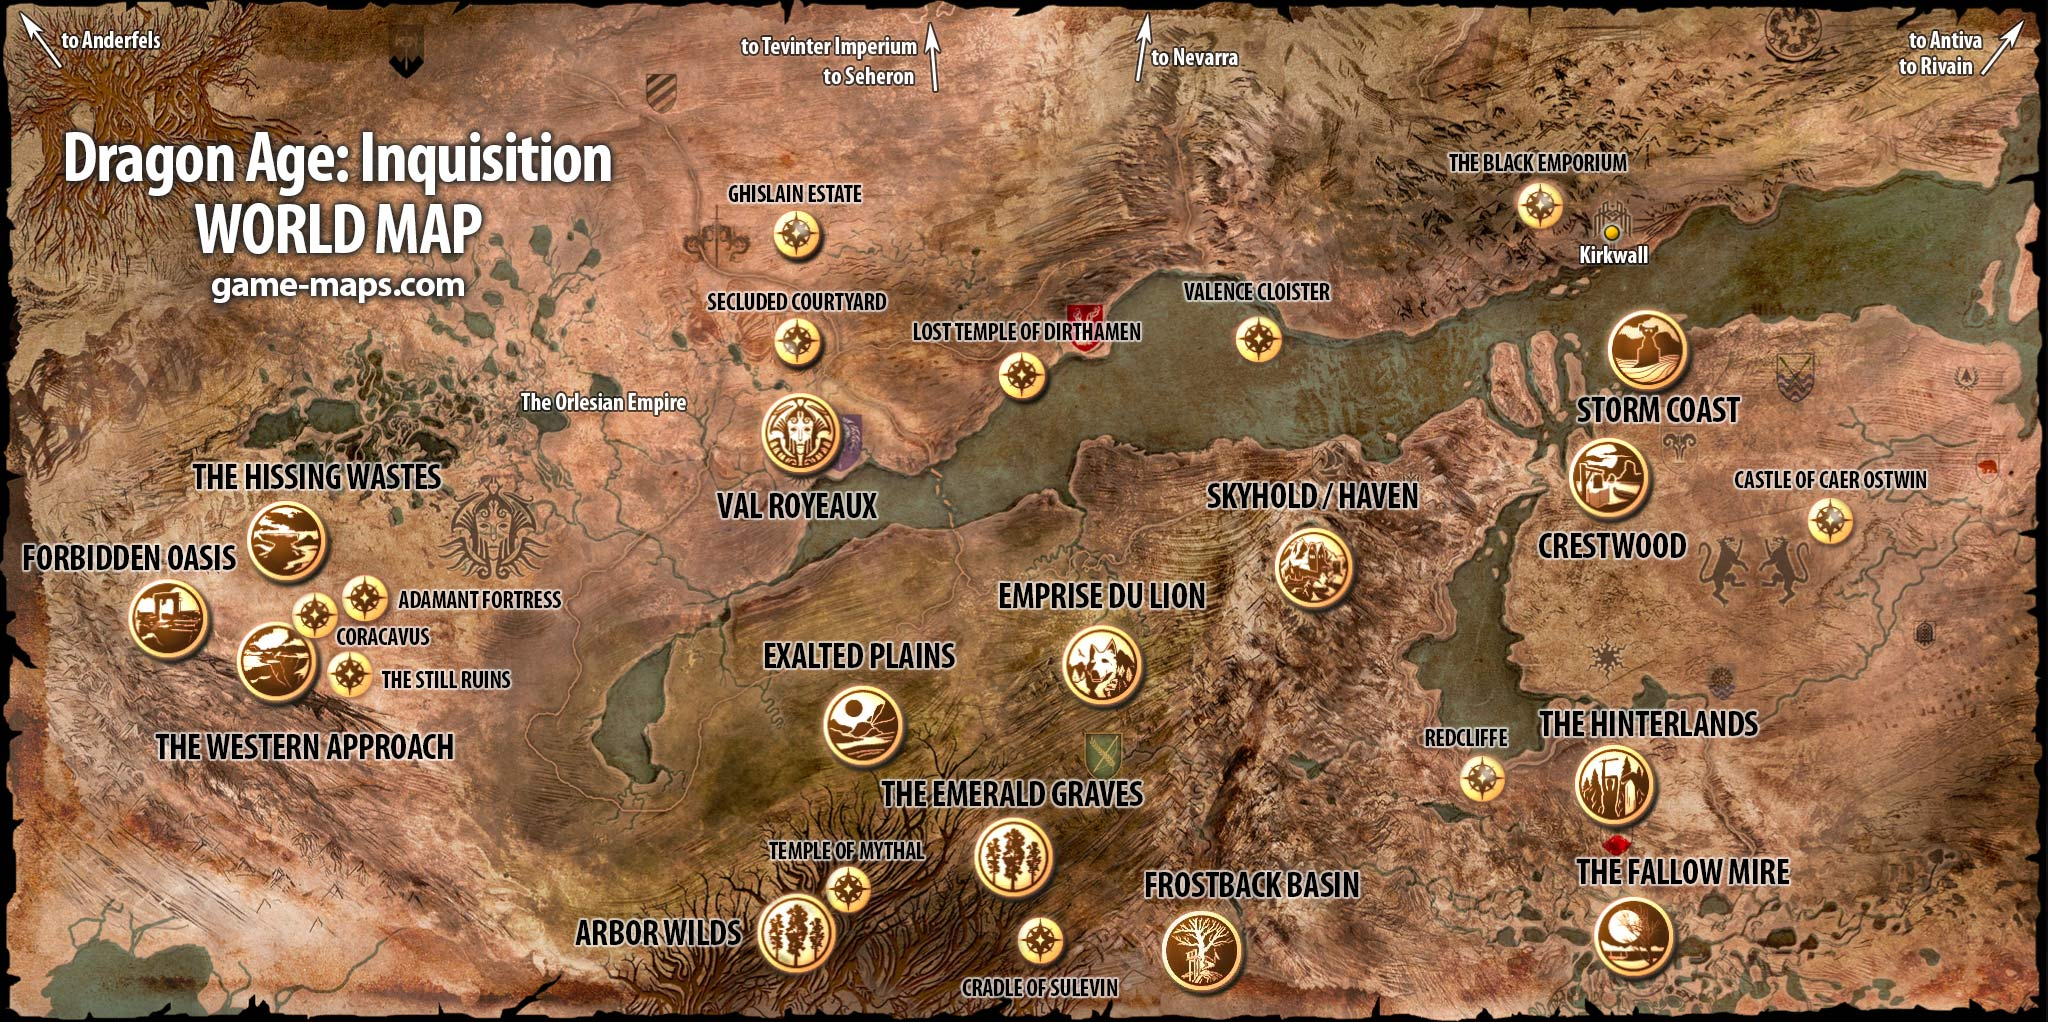 http://game-maps.com/DAI/img/DAI-World-Map.jpg